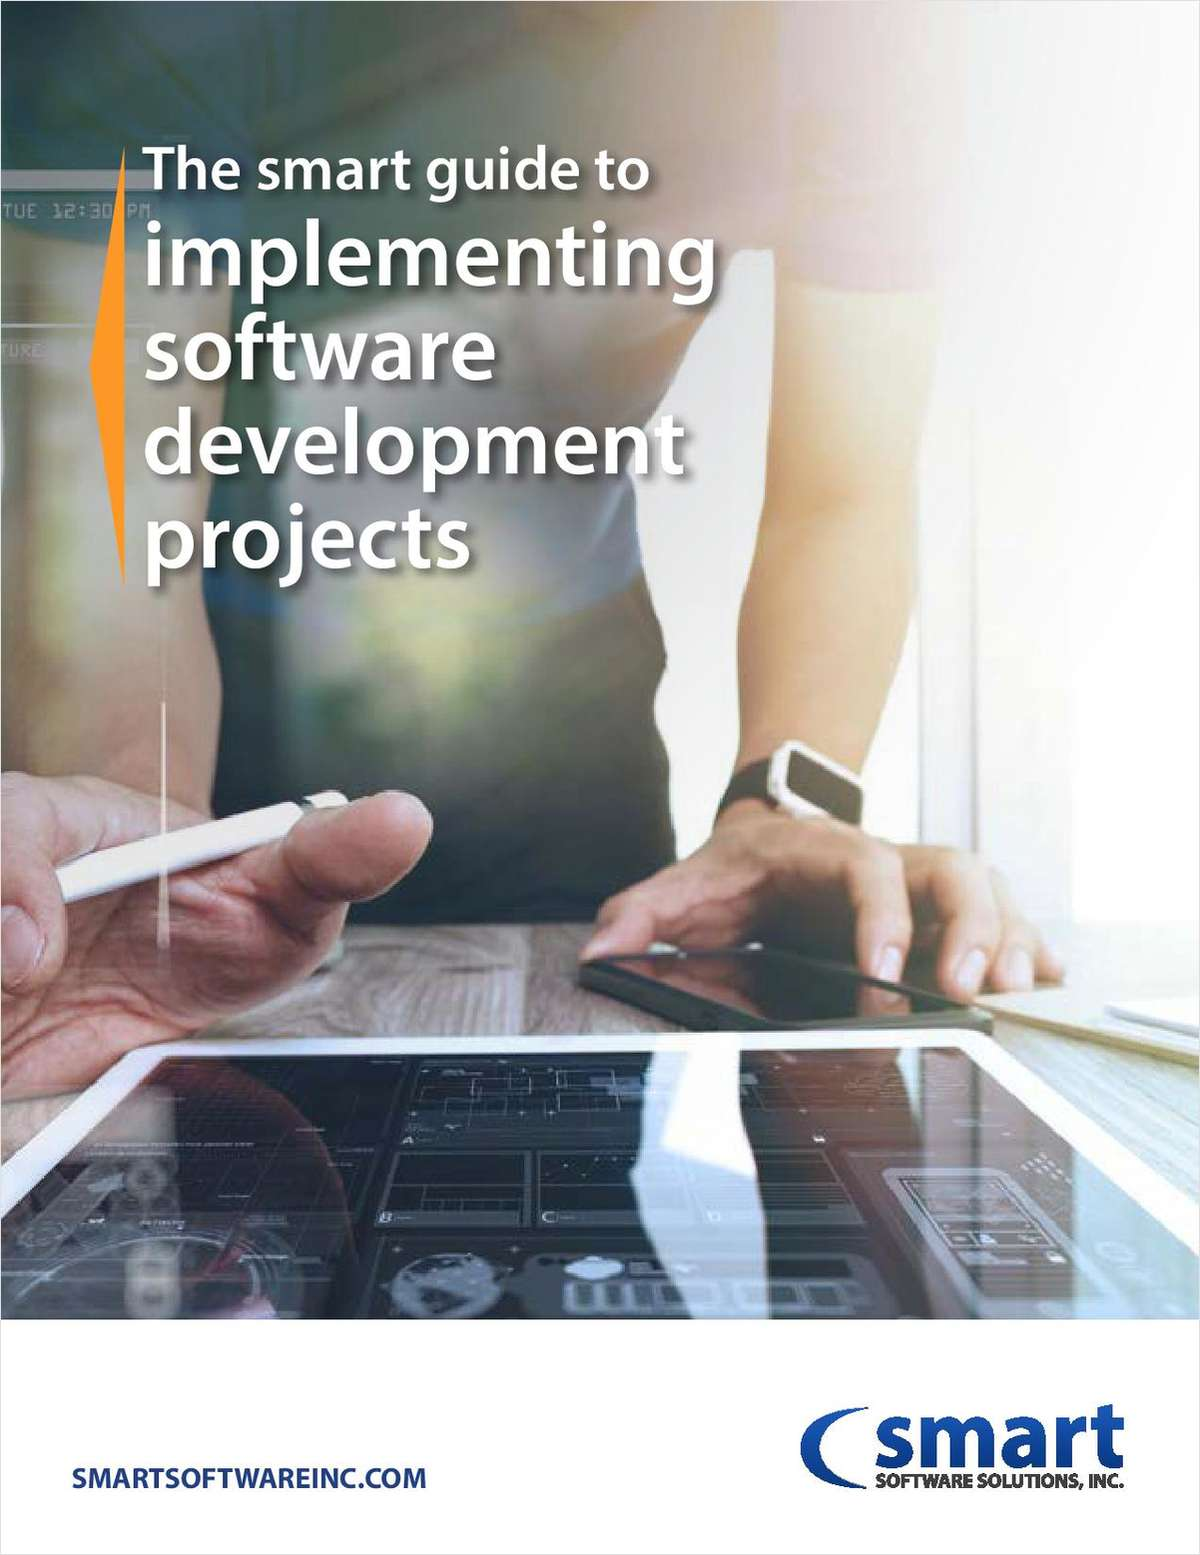 The Smart Guide to Implementing Software Development Projects